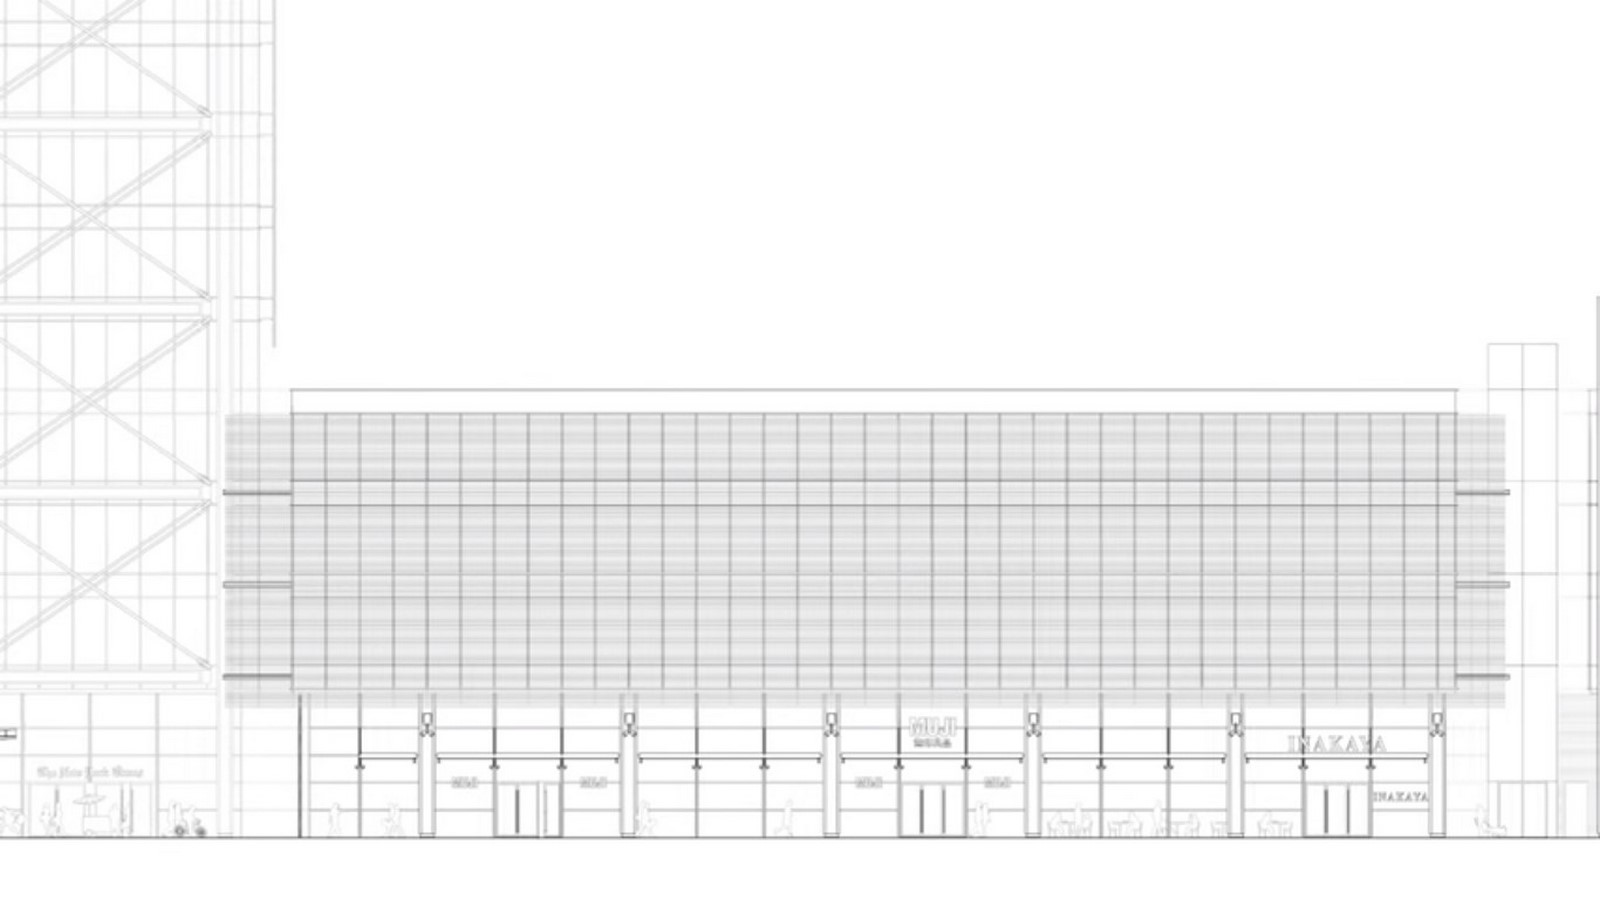 The New York Times Building by Renzo Piano: Inspired by the culture of transparency - Sheet7